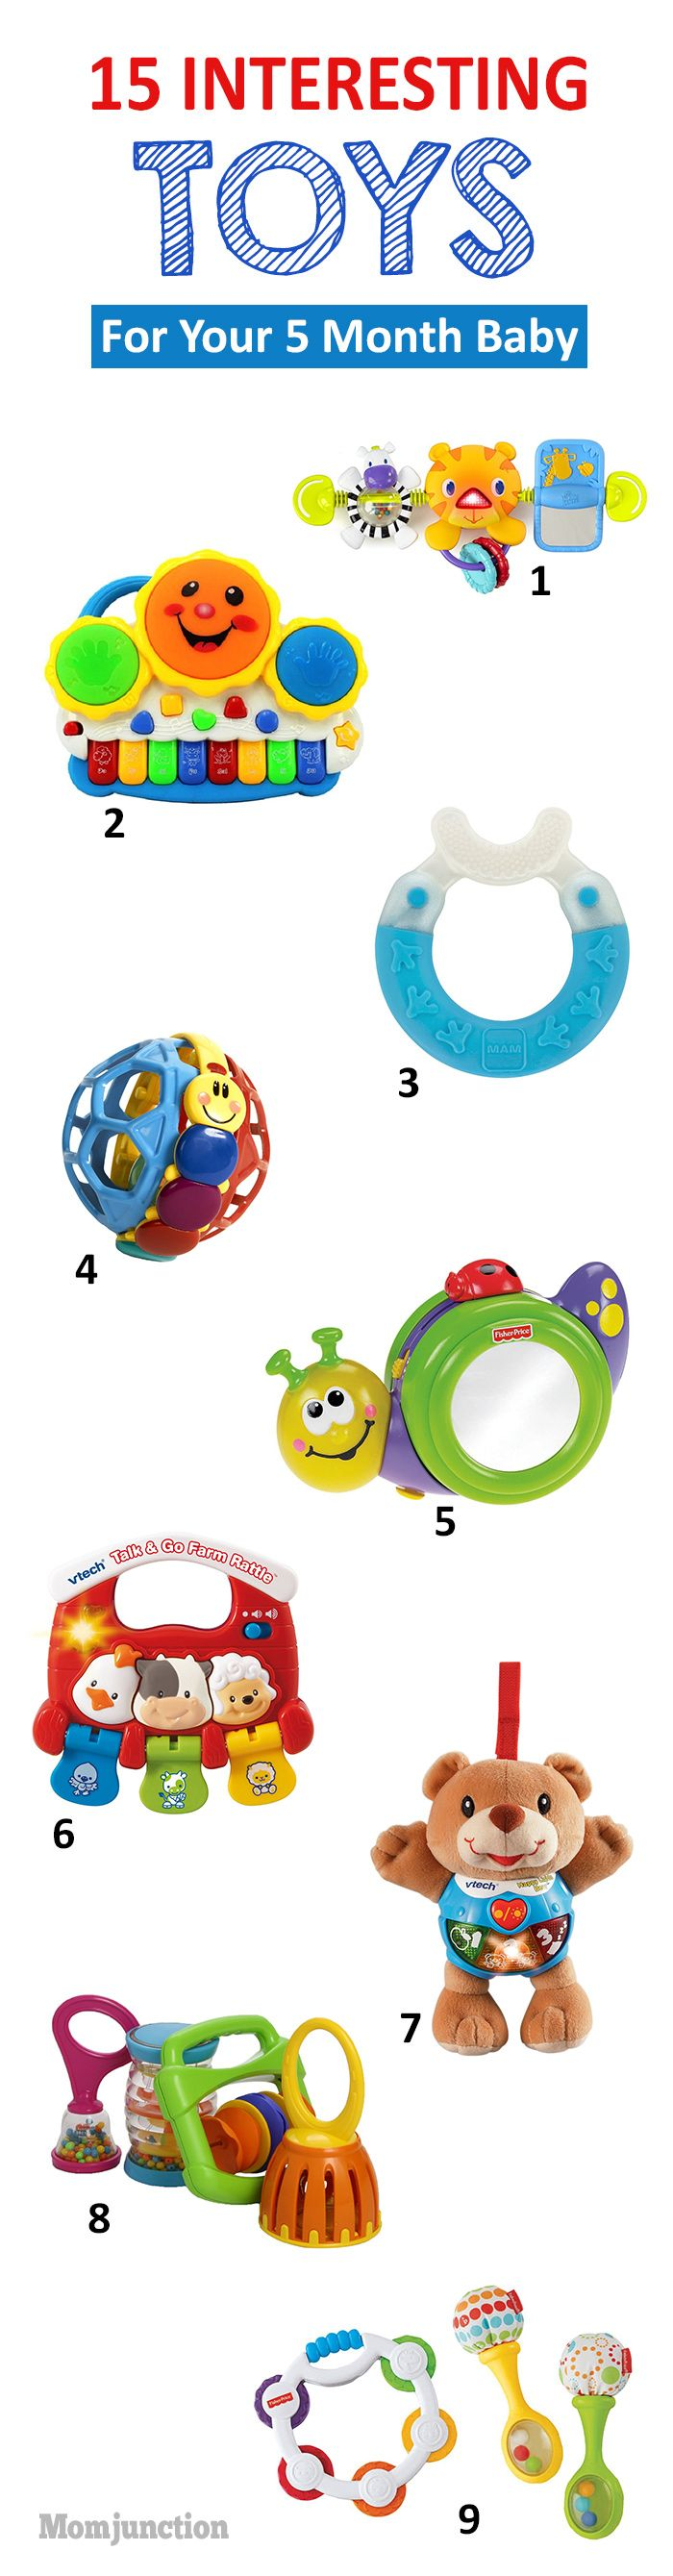 15 Interesting Toys For Your 5 Month Old Baby Baby Stuff Baby 5